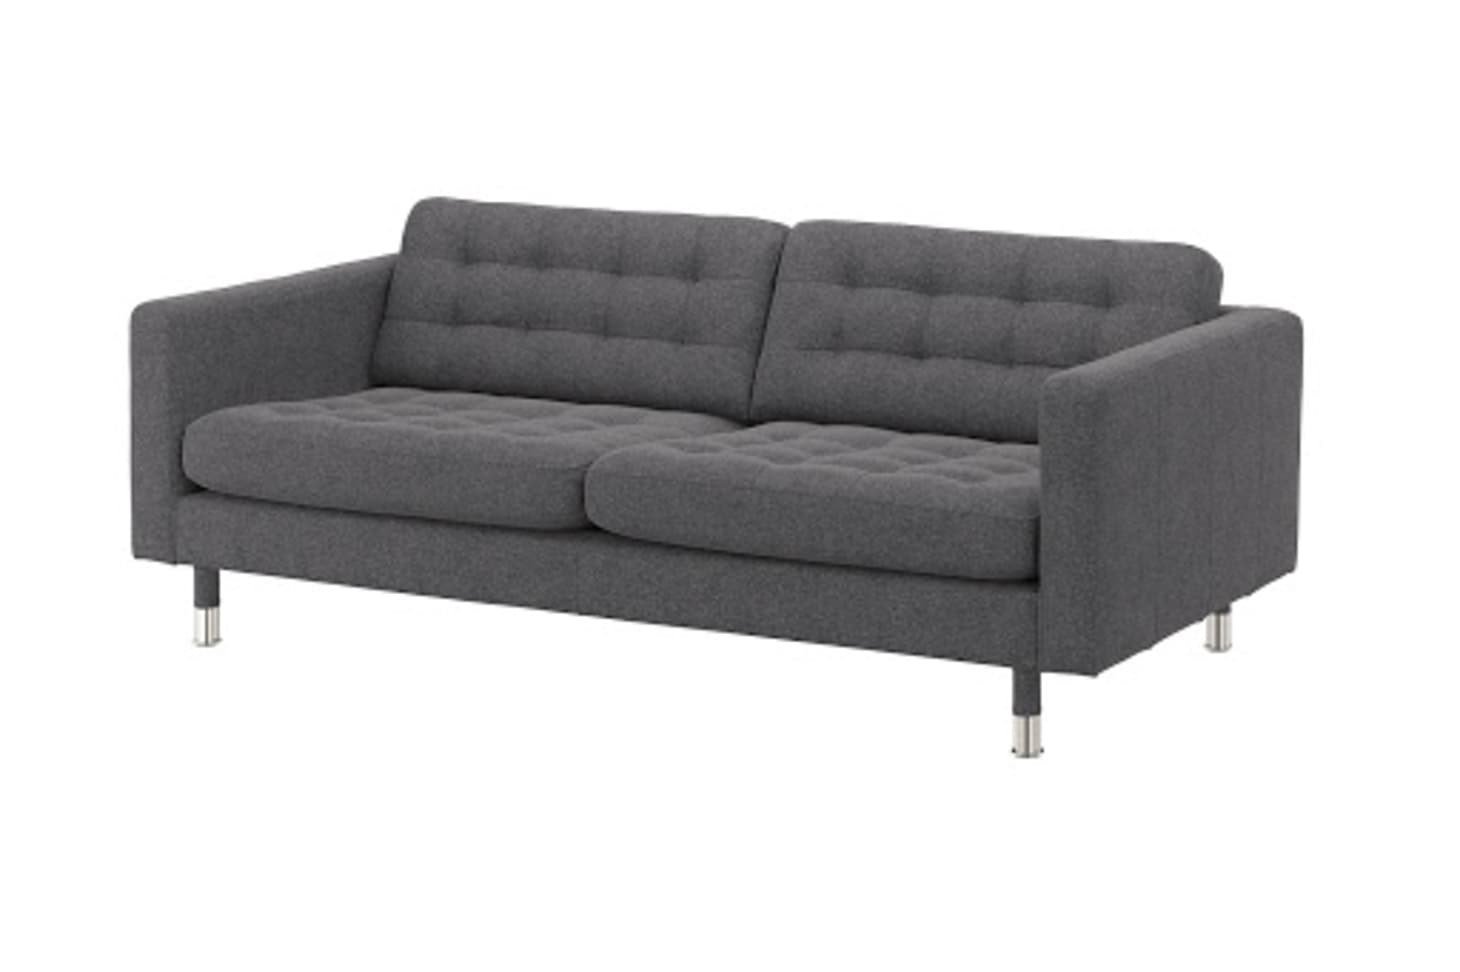 new arrivals d36c2 68244 Affordable and Stylish Sofas Under $1000 | Apartment Therapy